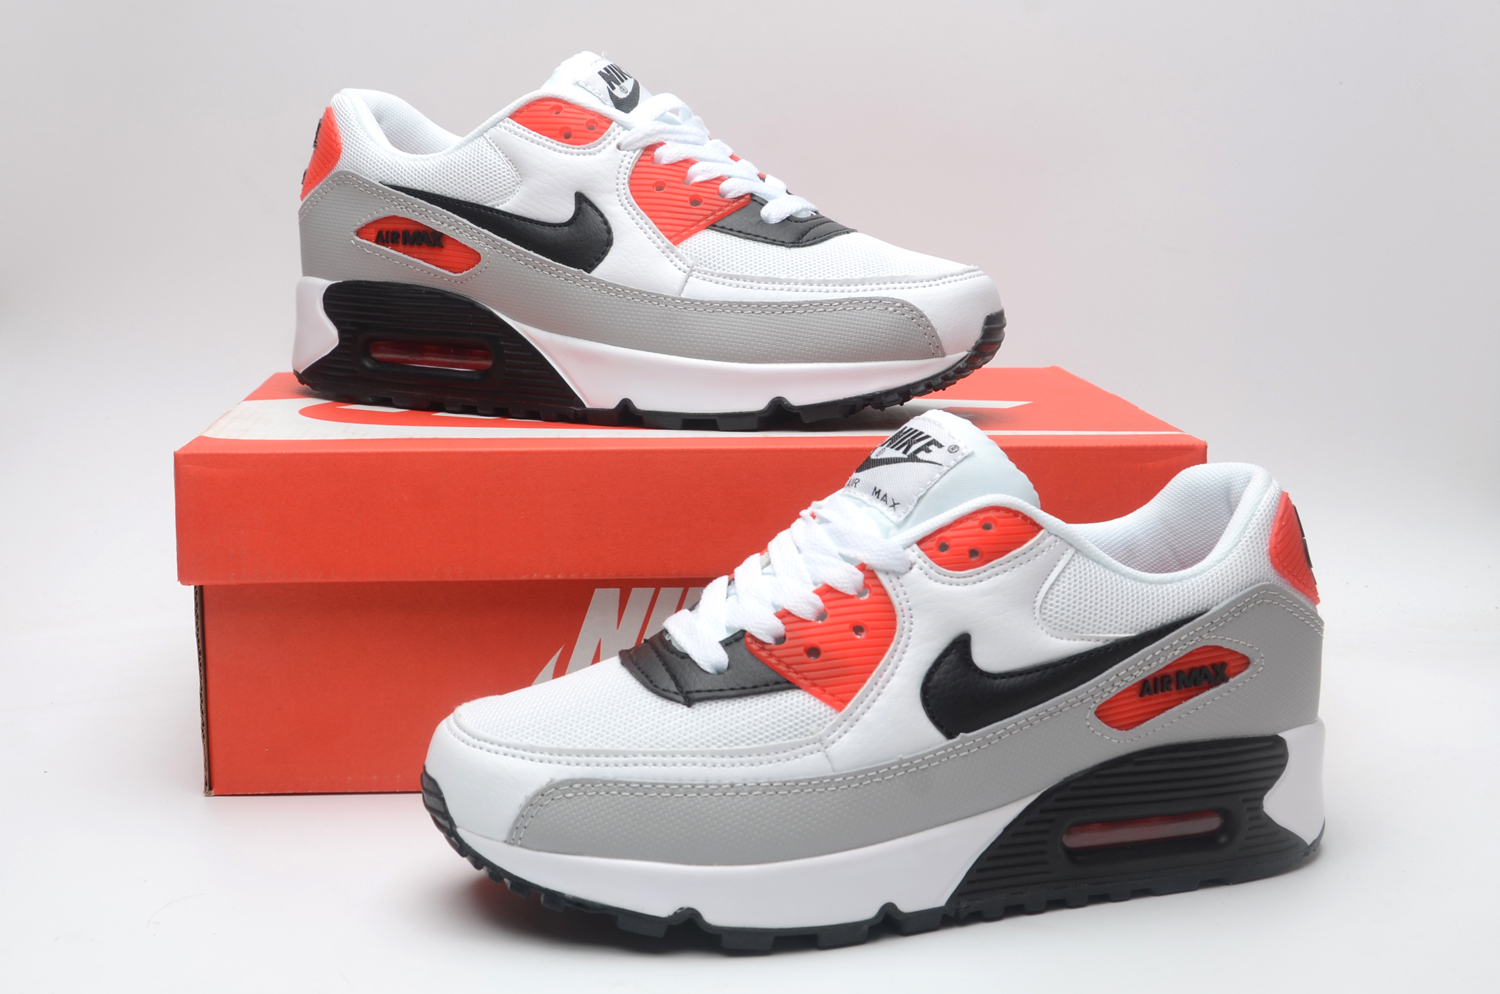 Women's Running weapon Air Max 90 Shoes 034